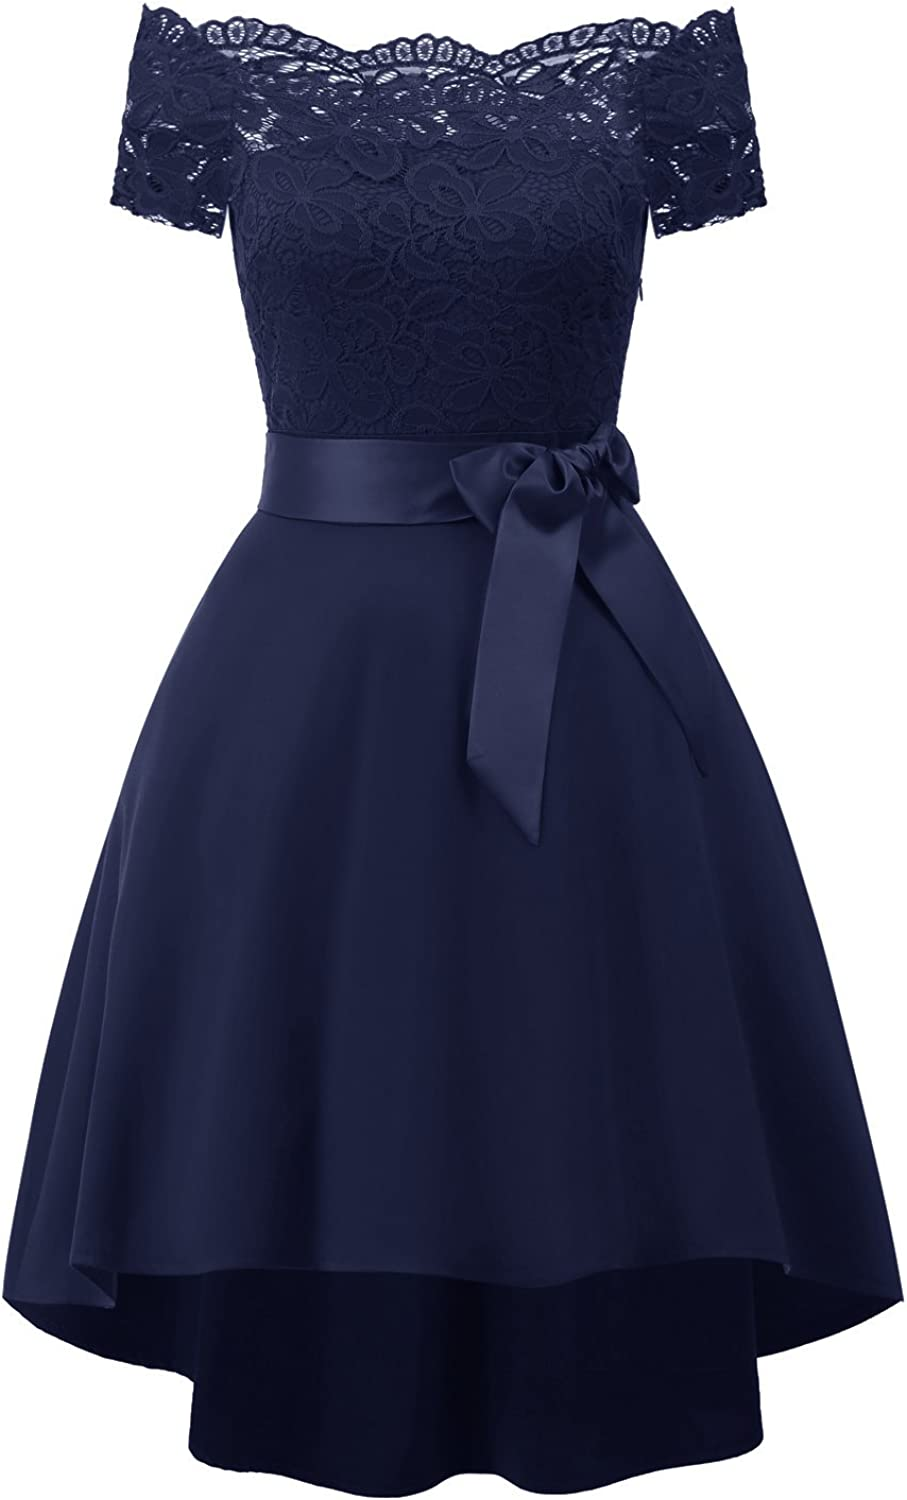 Chowsir Women Off Shoulder Lace Bridesmaid Cocktail Party Prom Midi Dress